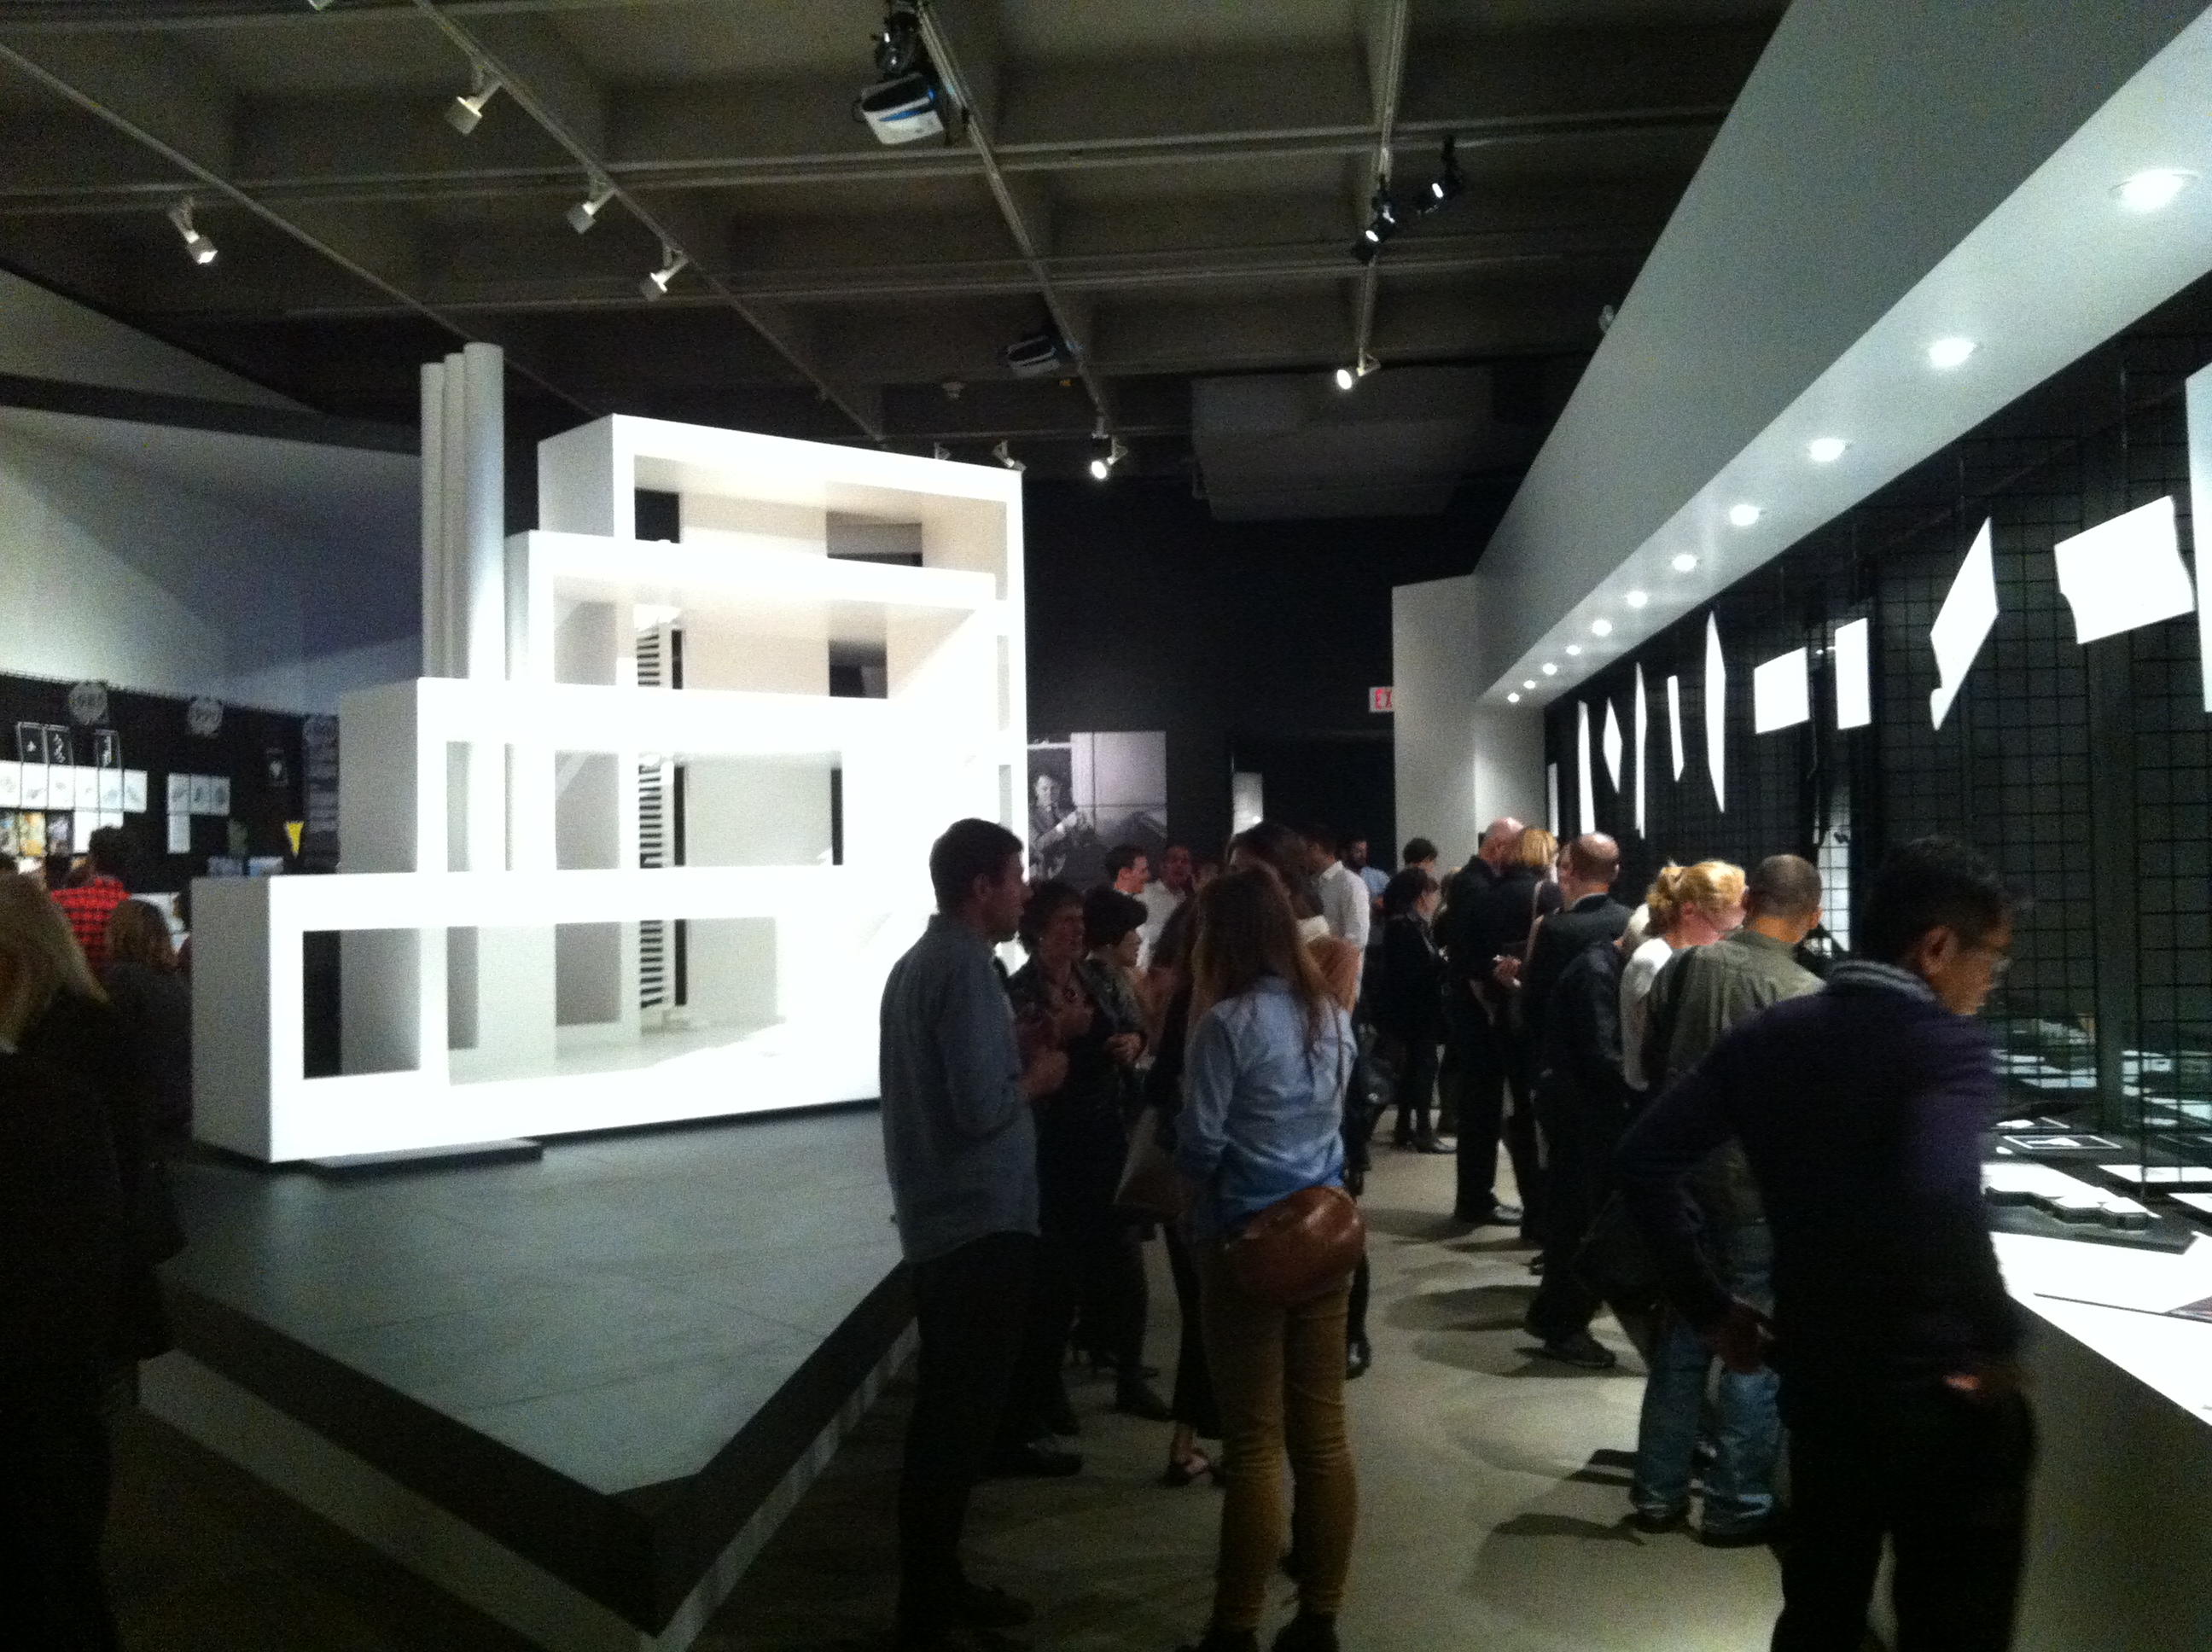 Daniel Evan White Architect – Museum of Vancouver exhibition opens